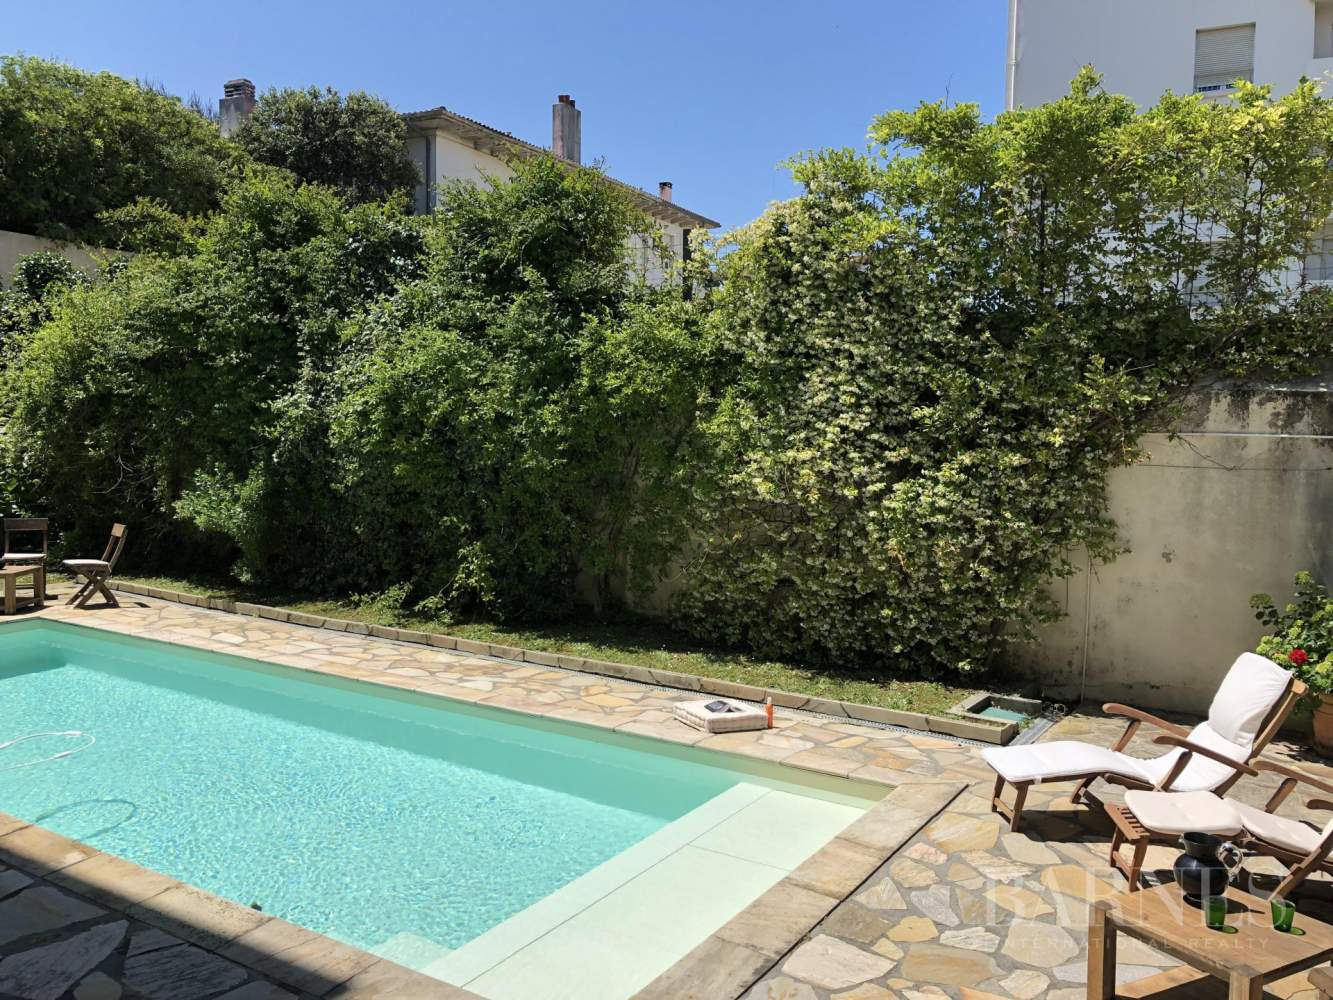 BIARRITZ, HOUSE WITH GARDEN AND POOL, 6 BEDROOMS, HEATED POOL. 10 PEOPLE. picture 2